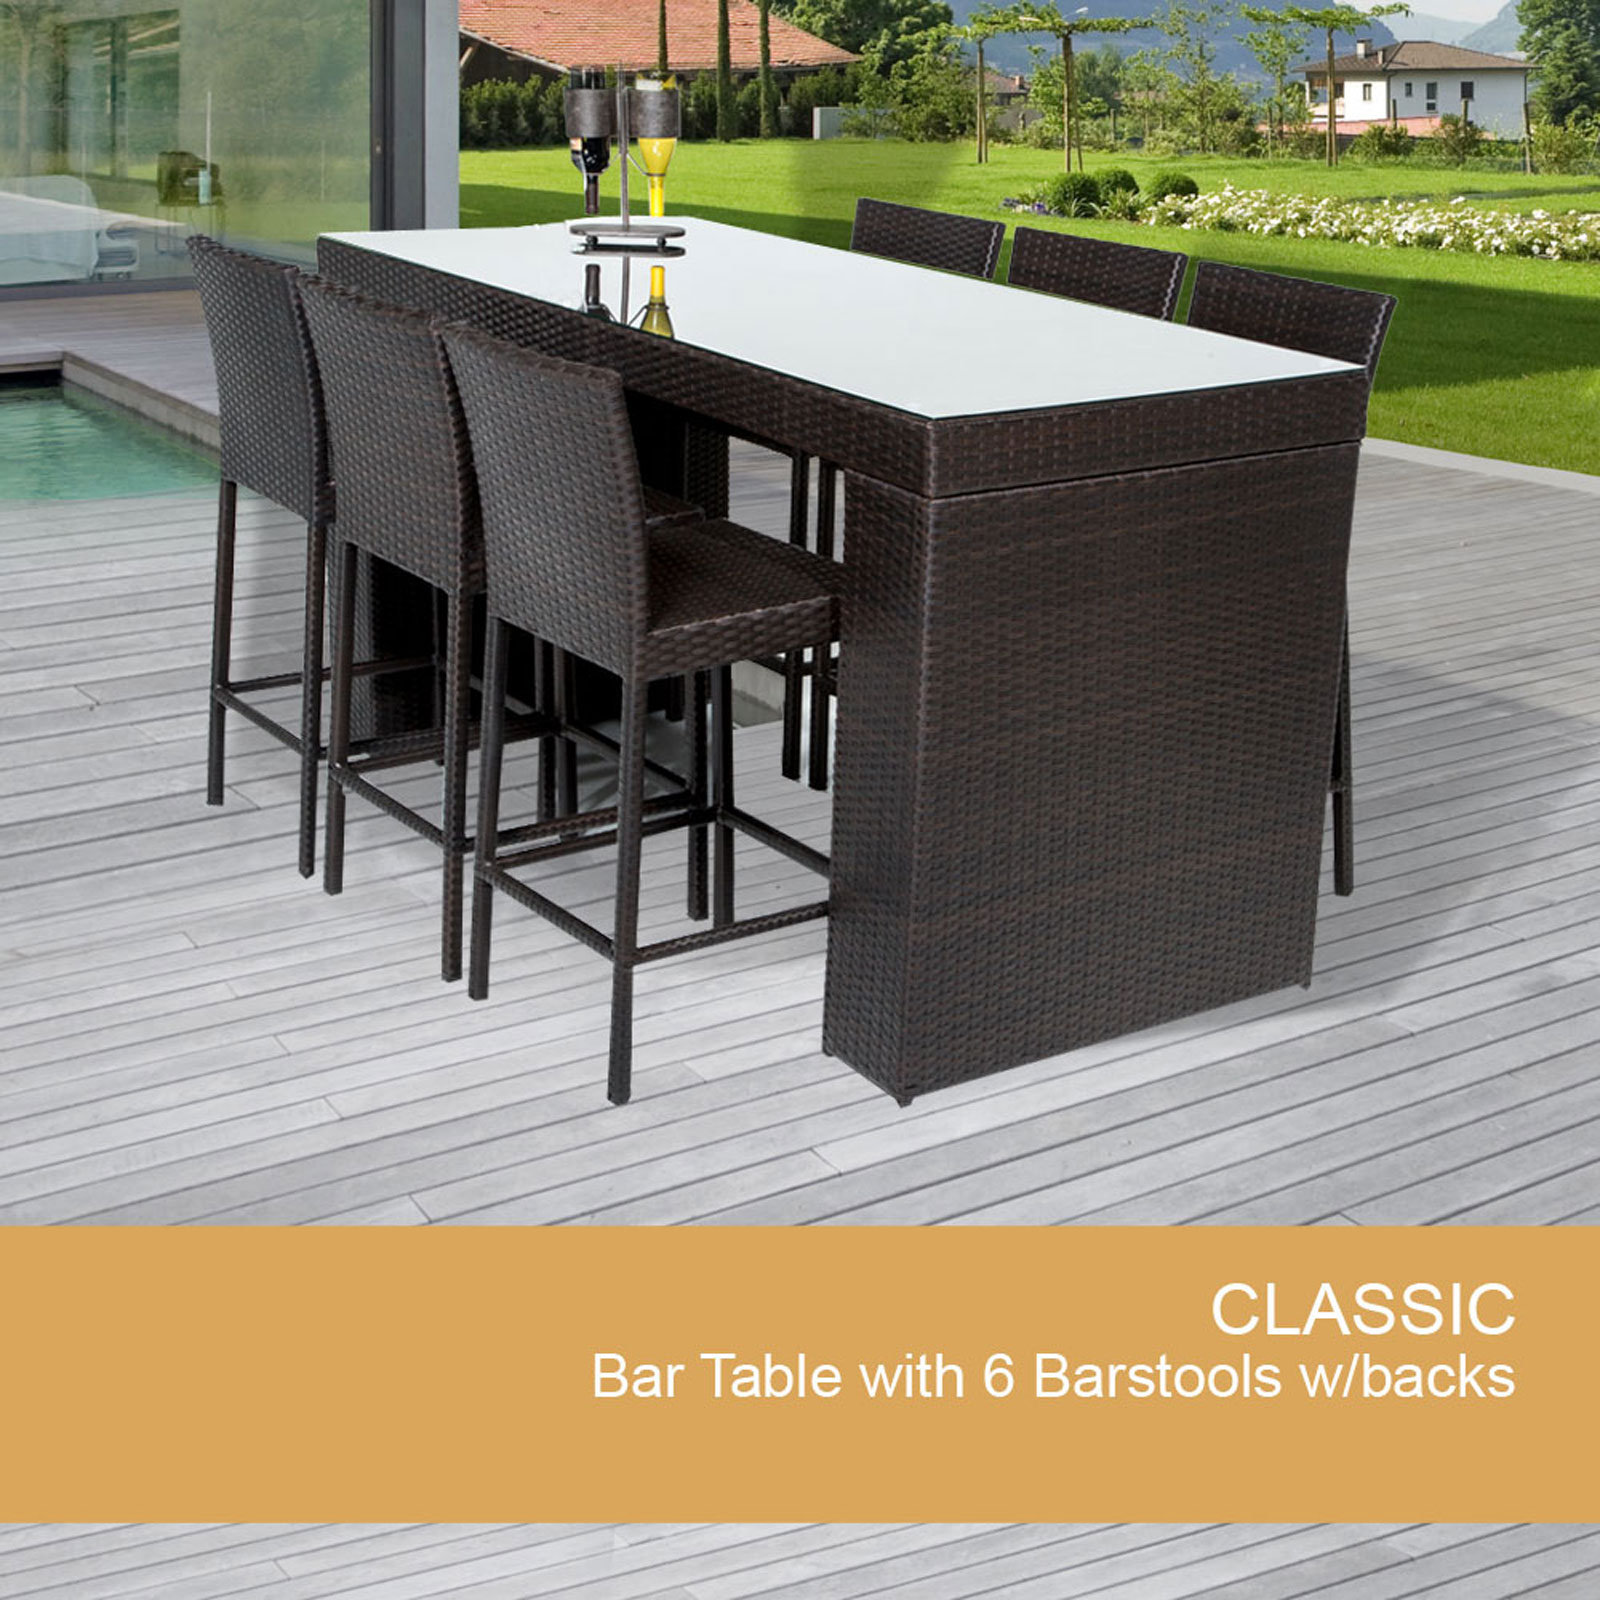 Bar table set with barstools 7 piece outdoor wicker patio furniture bar table set with barstools 7 piece outdoor wicker patio furniture walmart watchthetrailerfo